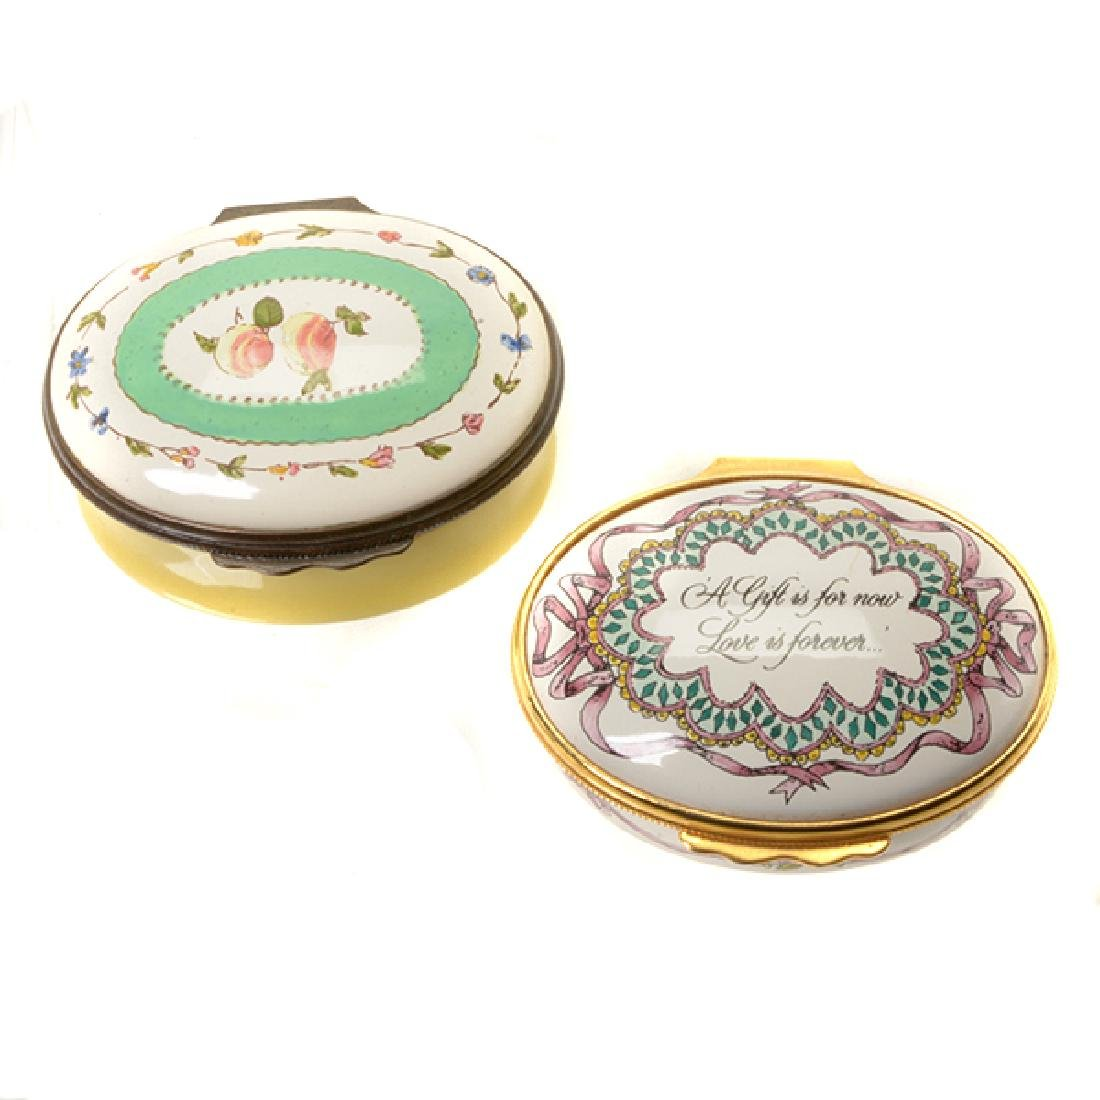 Collection of Porcelain Enameled Boxes - 7